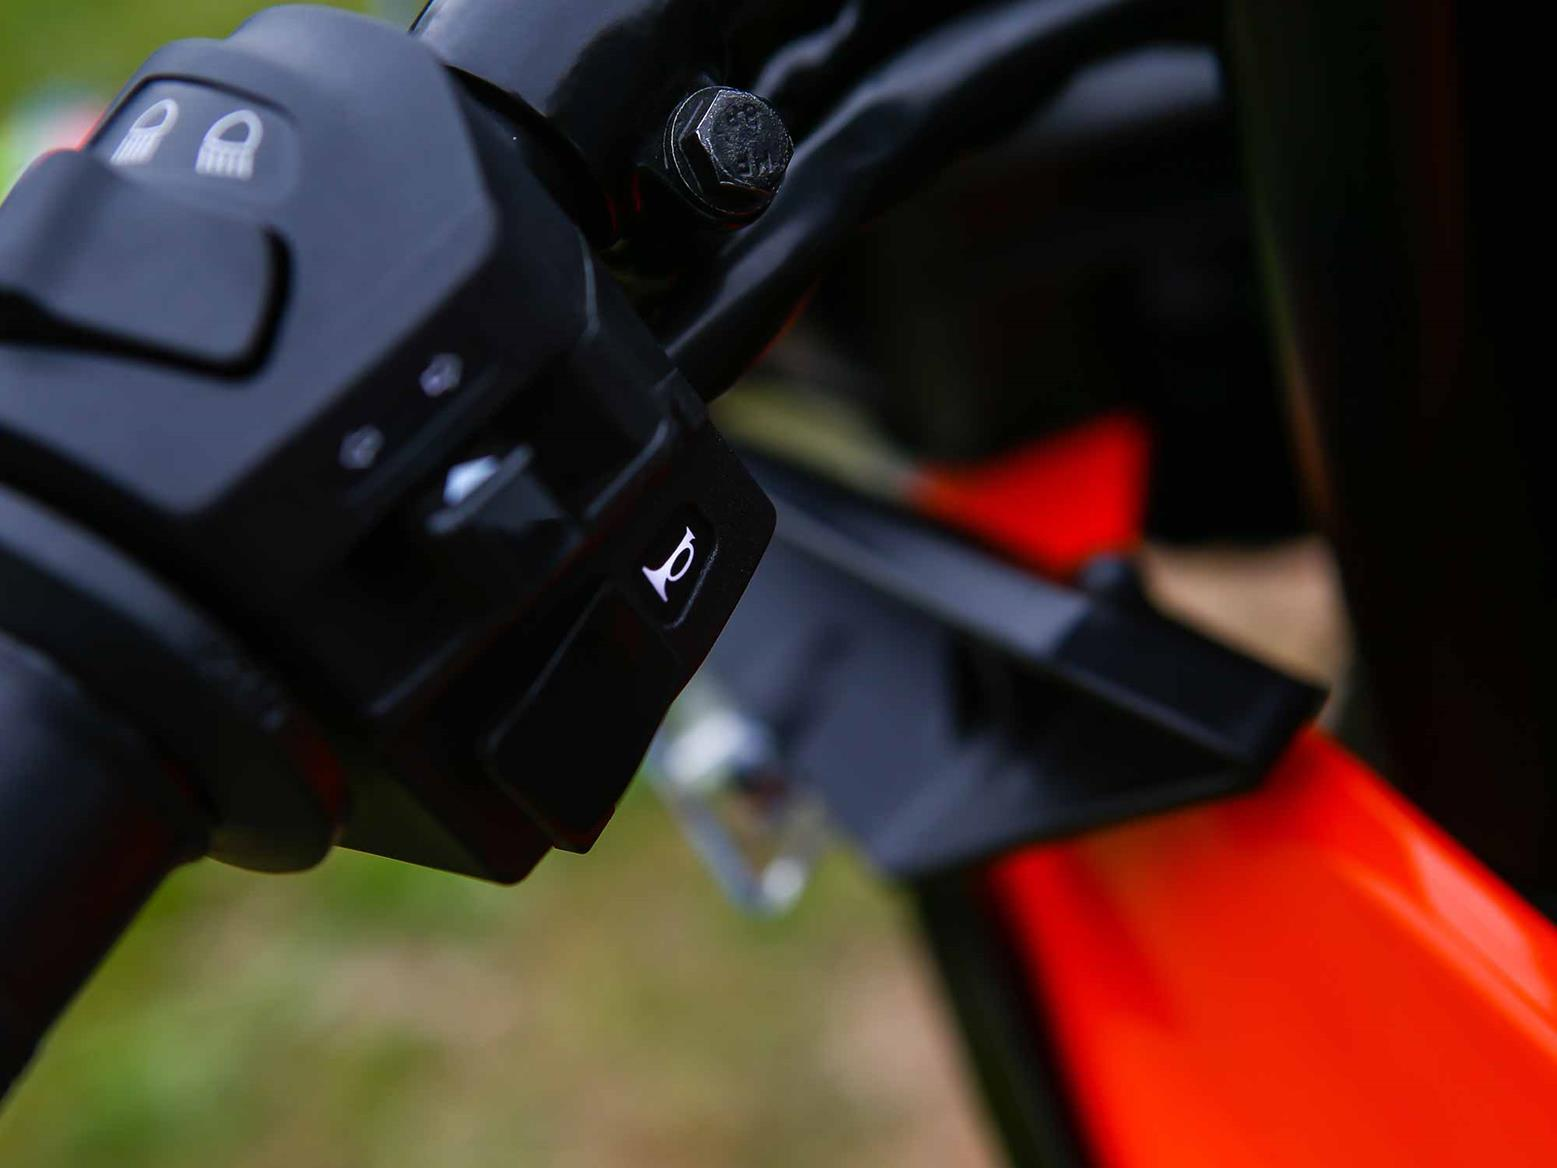 The KTM RC390 gets back-lit switch gear